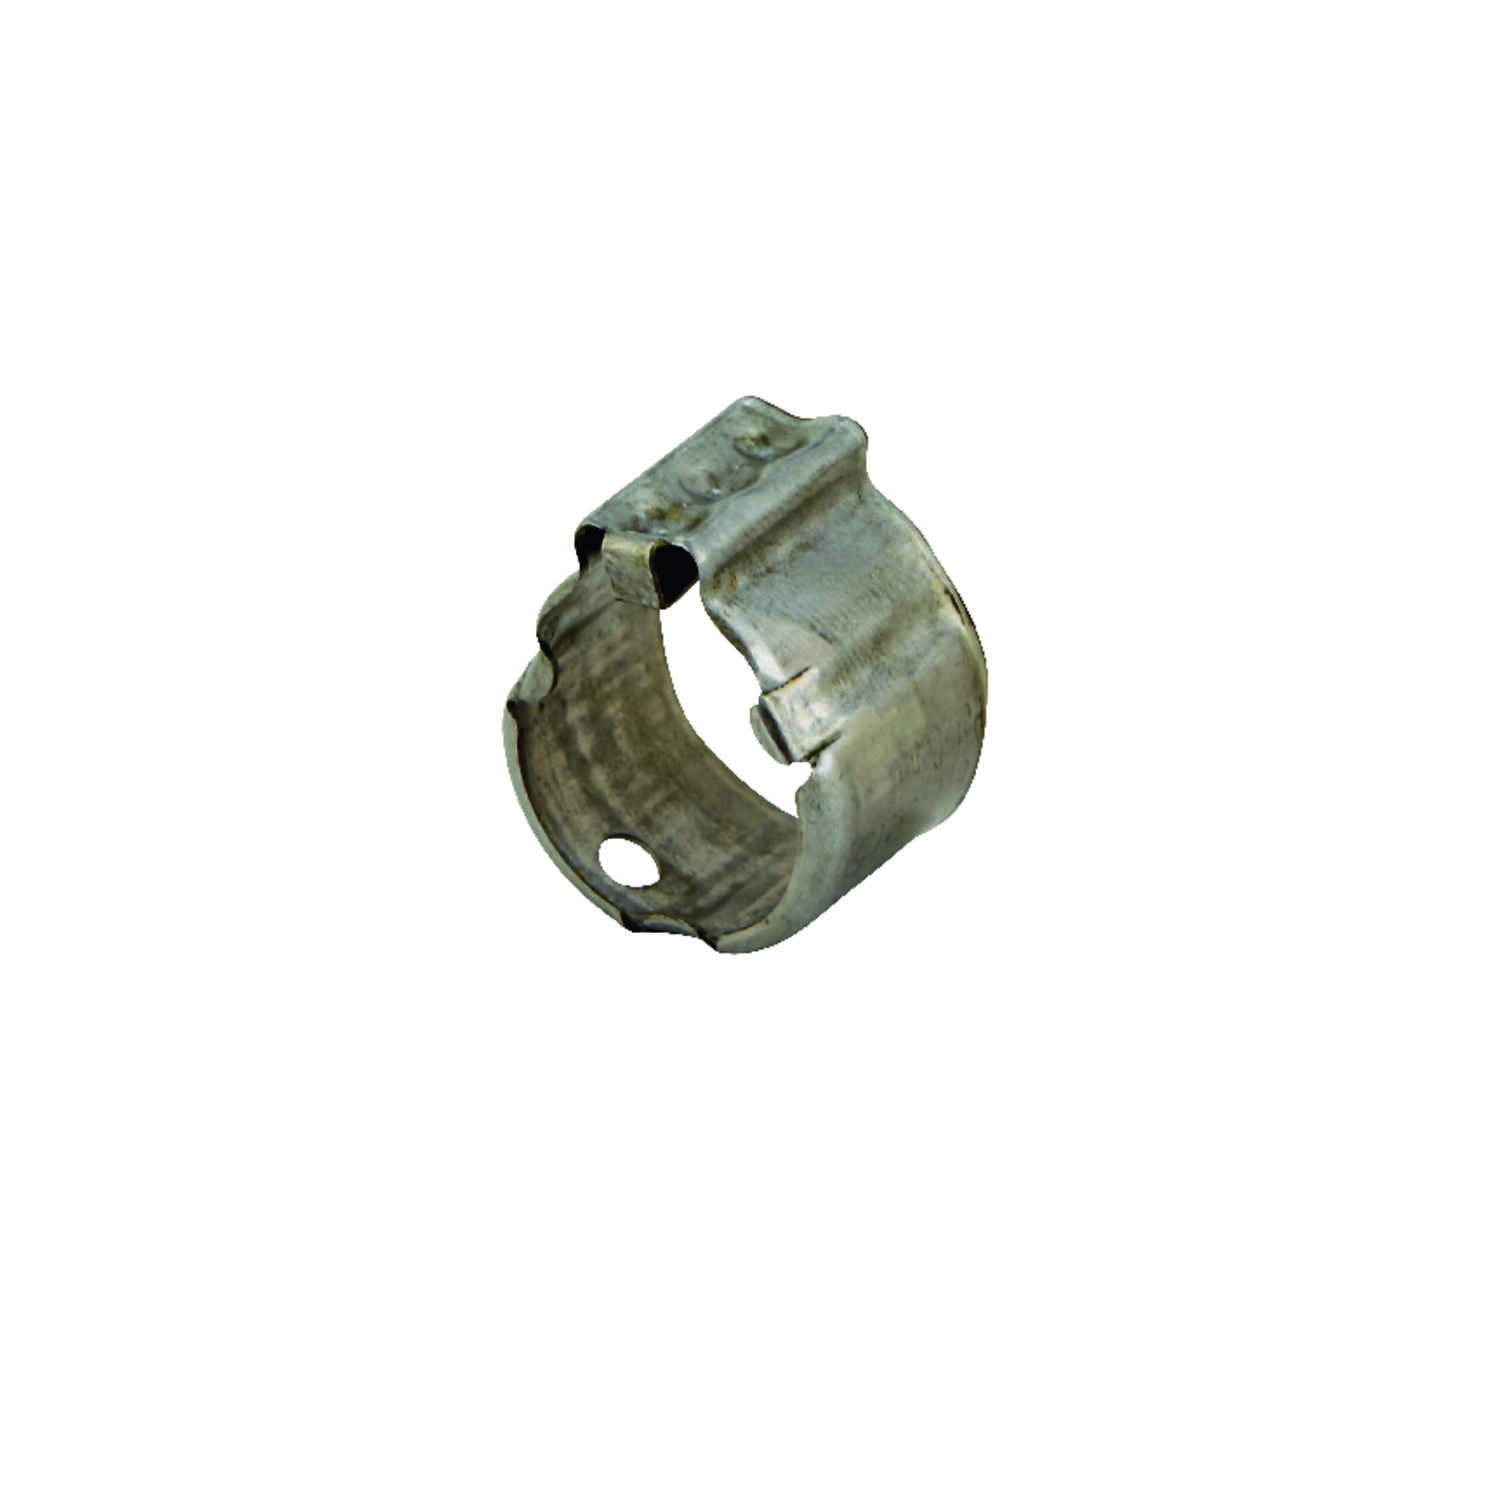 Zurn  Qickclamp  1/2 in. CTS   x 1/2 in. Dia. CTS  Crimp Ring  Stainless Steel